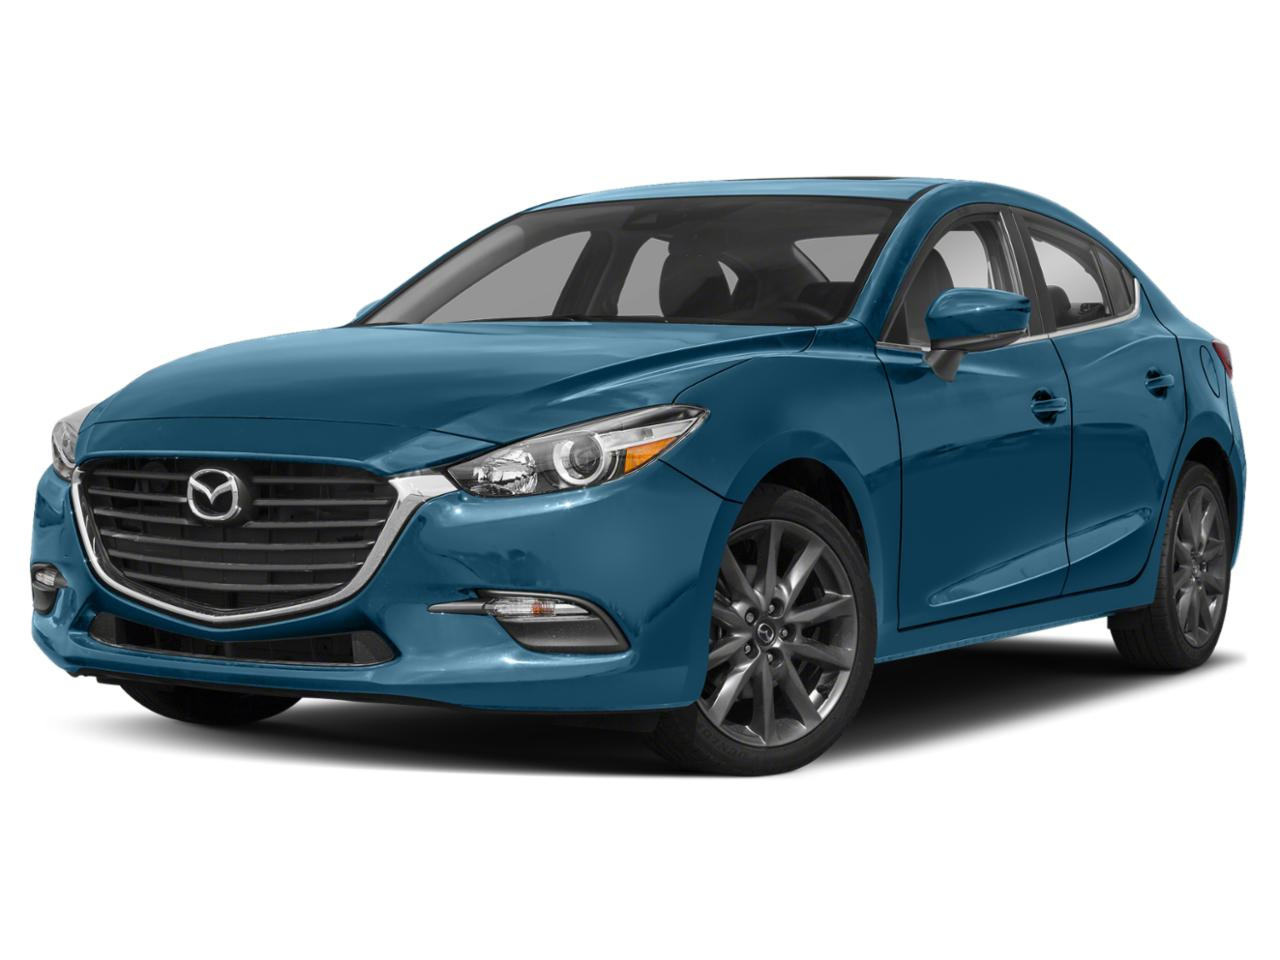 2018 Mazda Mazda3 4-Door Vehicle Photo in Spokane, WA 99207